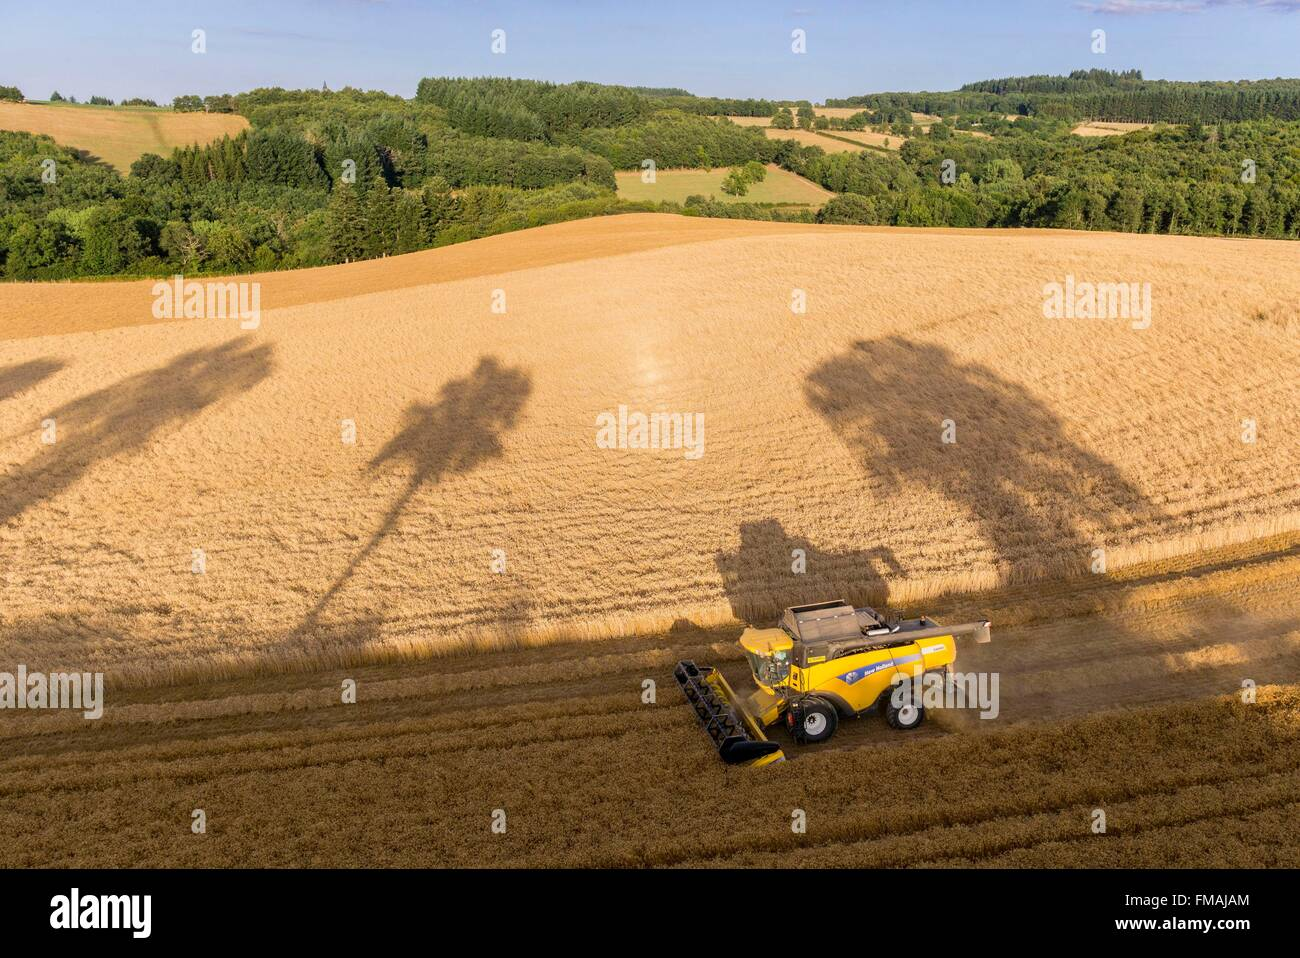 France, Puy de Dome, Saint Angel, harvest a wheat field (aerial view) - Stock Image